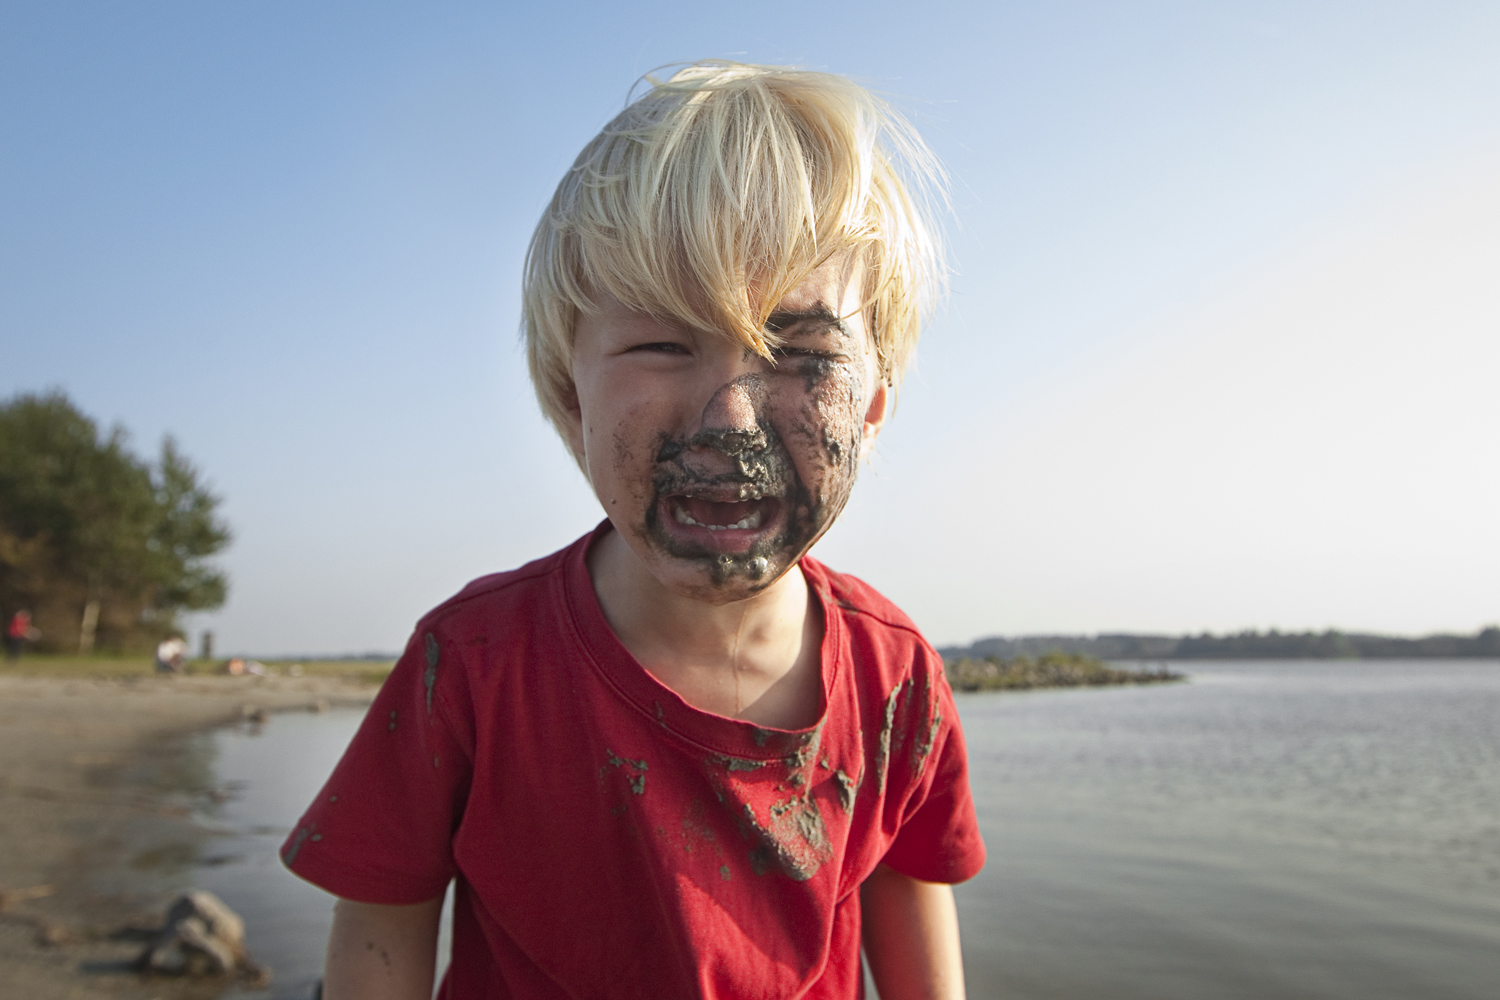 pity,sad, boy, child, childhood, red, shirt, cry, mud, dirt, face, lake, water, sunny, blue sky, blond, fair, shout, moan, weep, groan, tears, tree, sand, beach, rocks, floodlight, outdoor, county life, crisis,